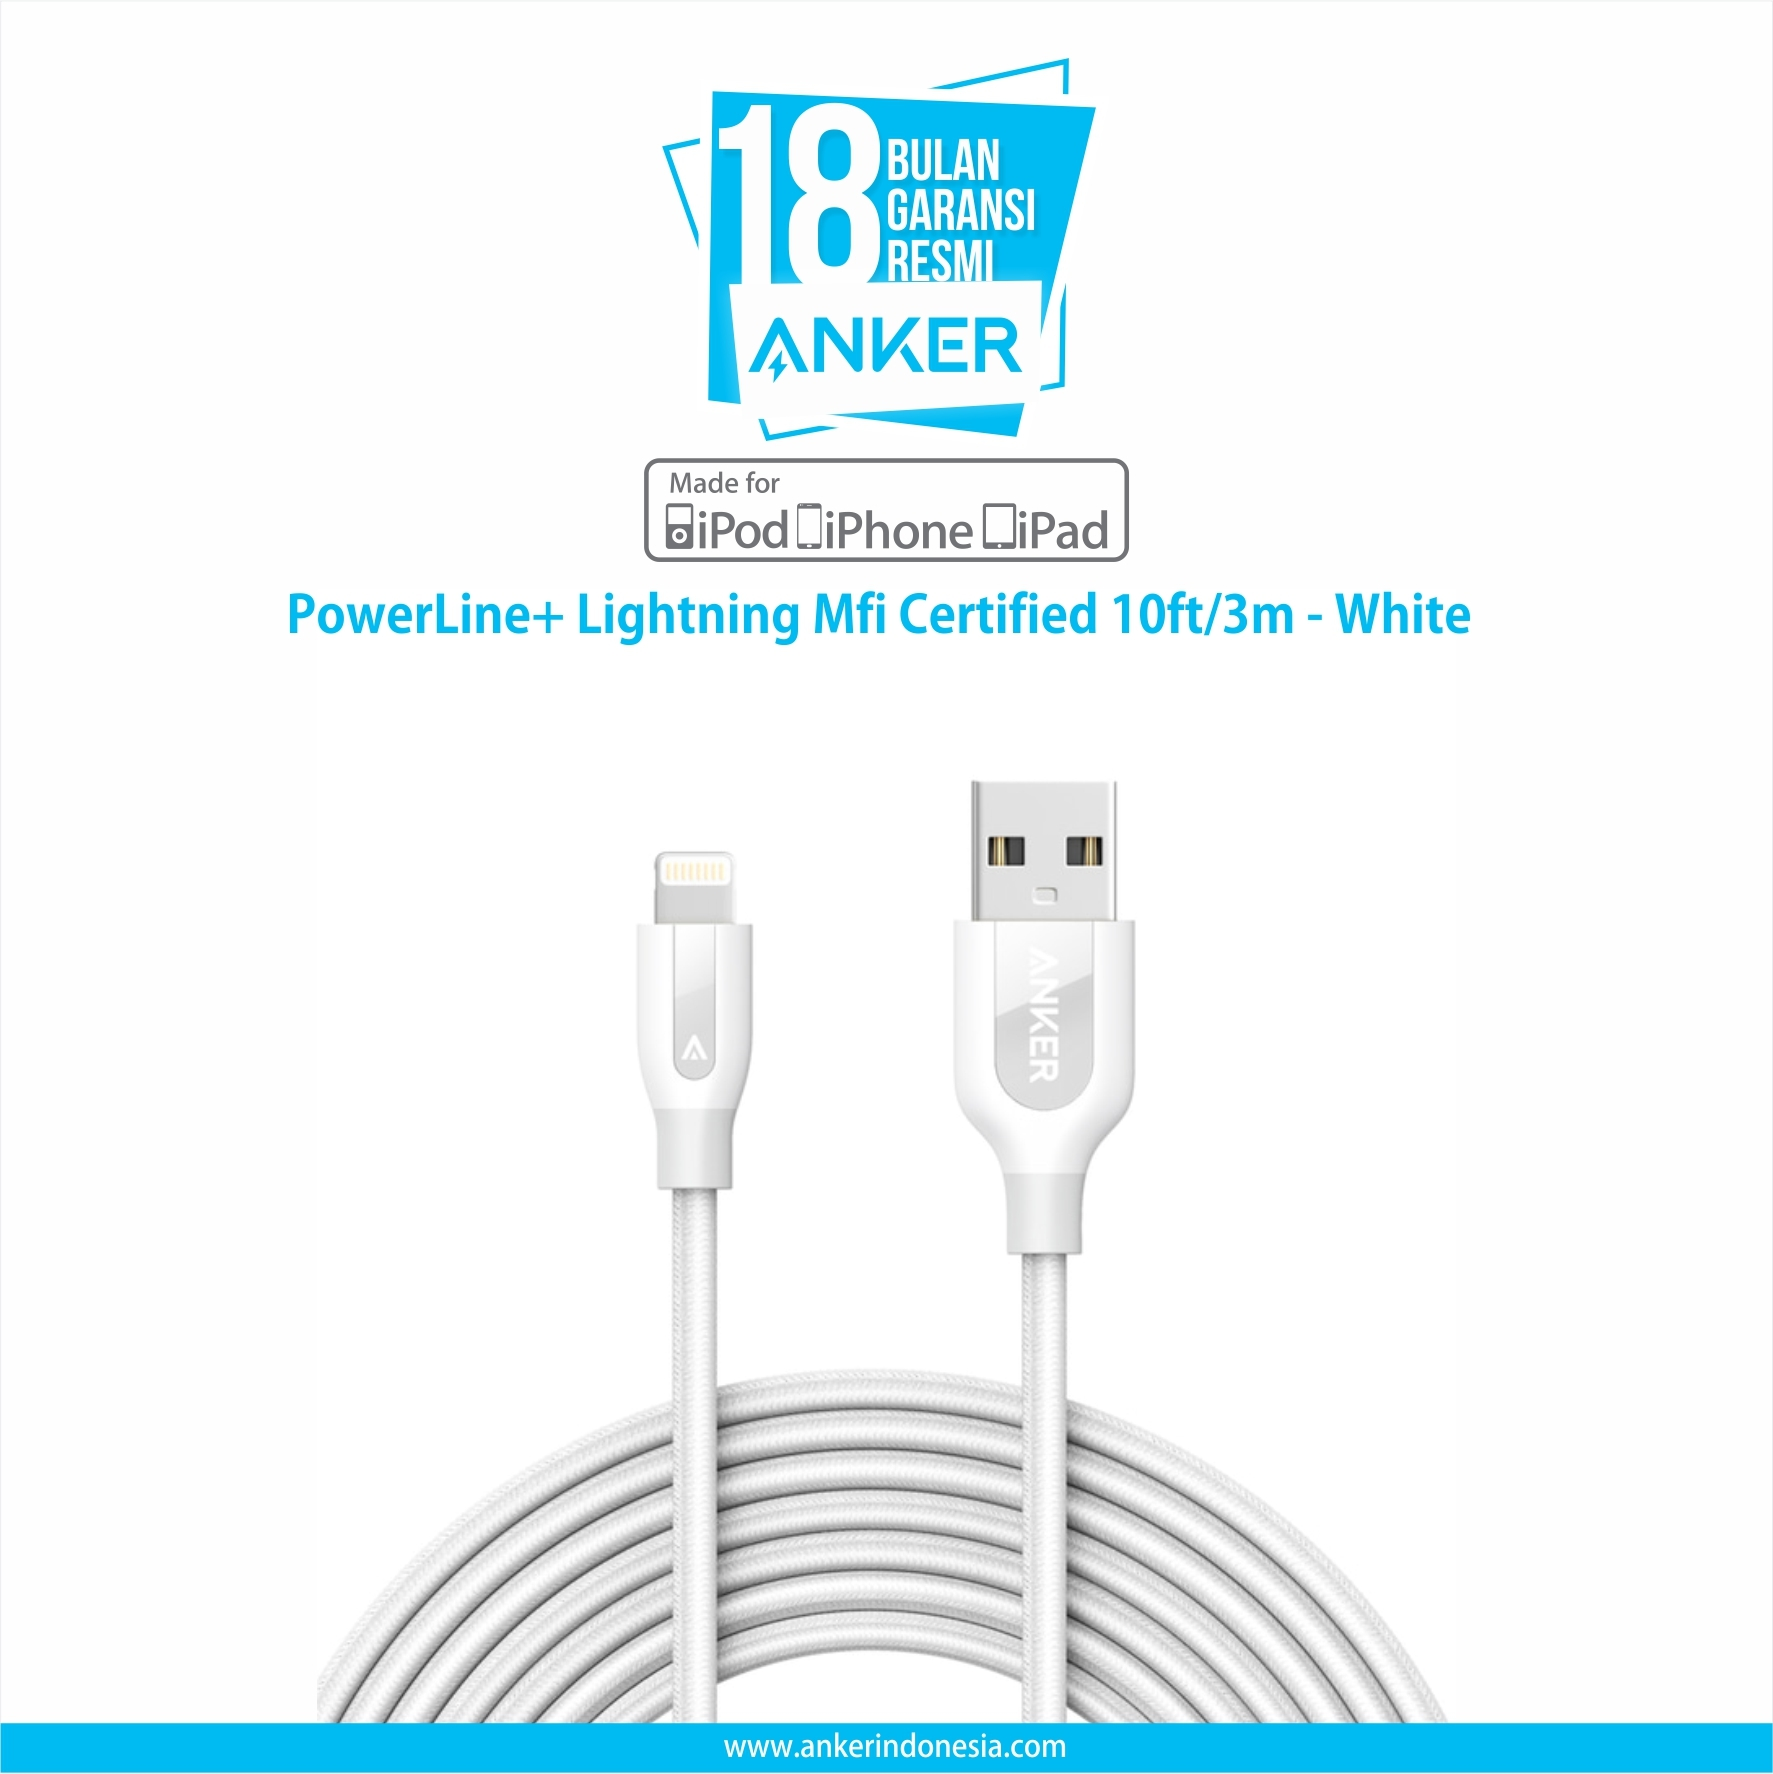 Anker Powerling Pluslightning Mfi Certified 10ft 3m   White  A8123h21 - Blanja.com